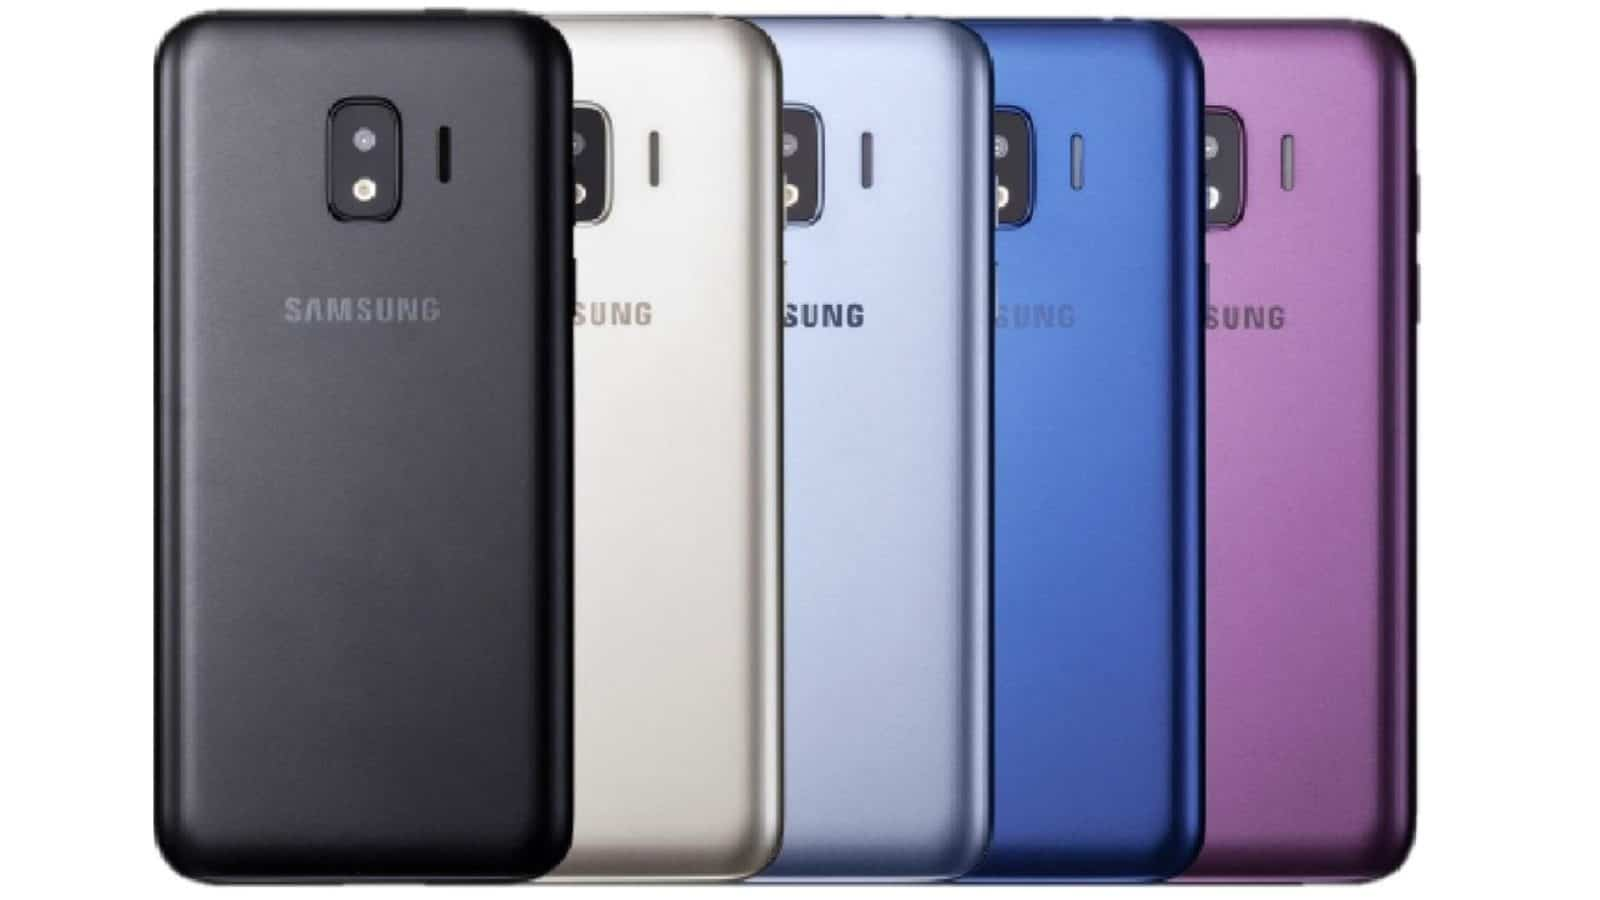 Samsung J2 Wallpaper Images: Samsung Galaxy J2 Core Leak Shows Five Color Variants